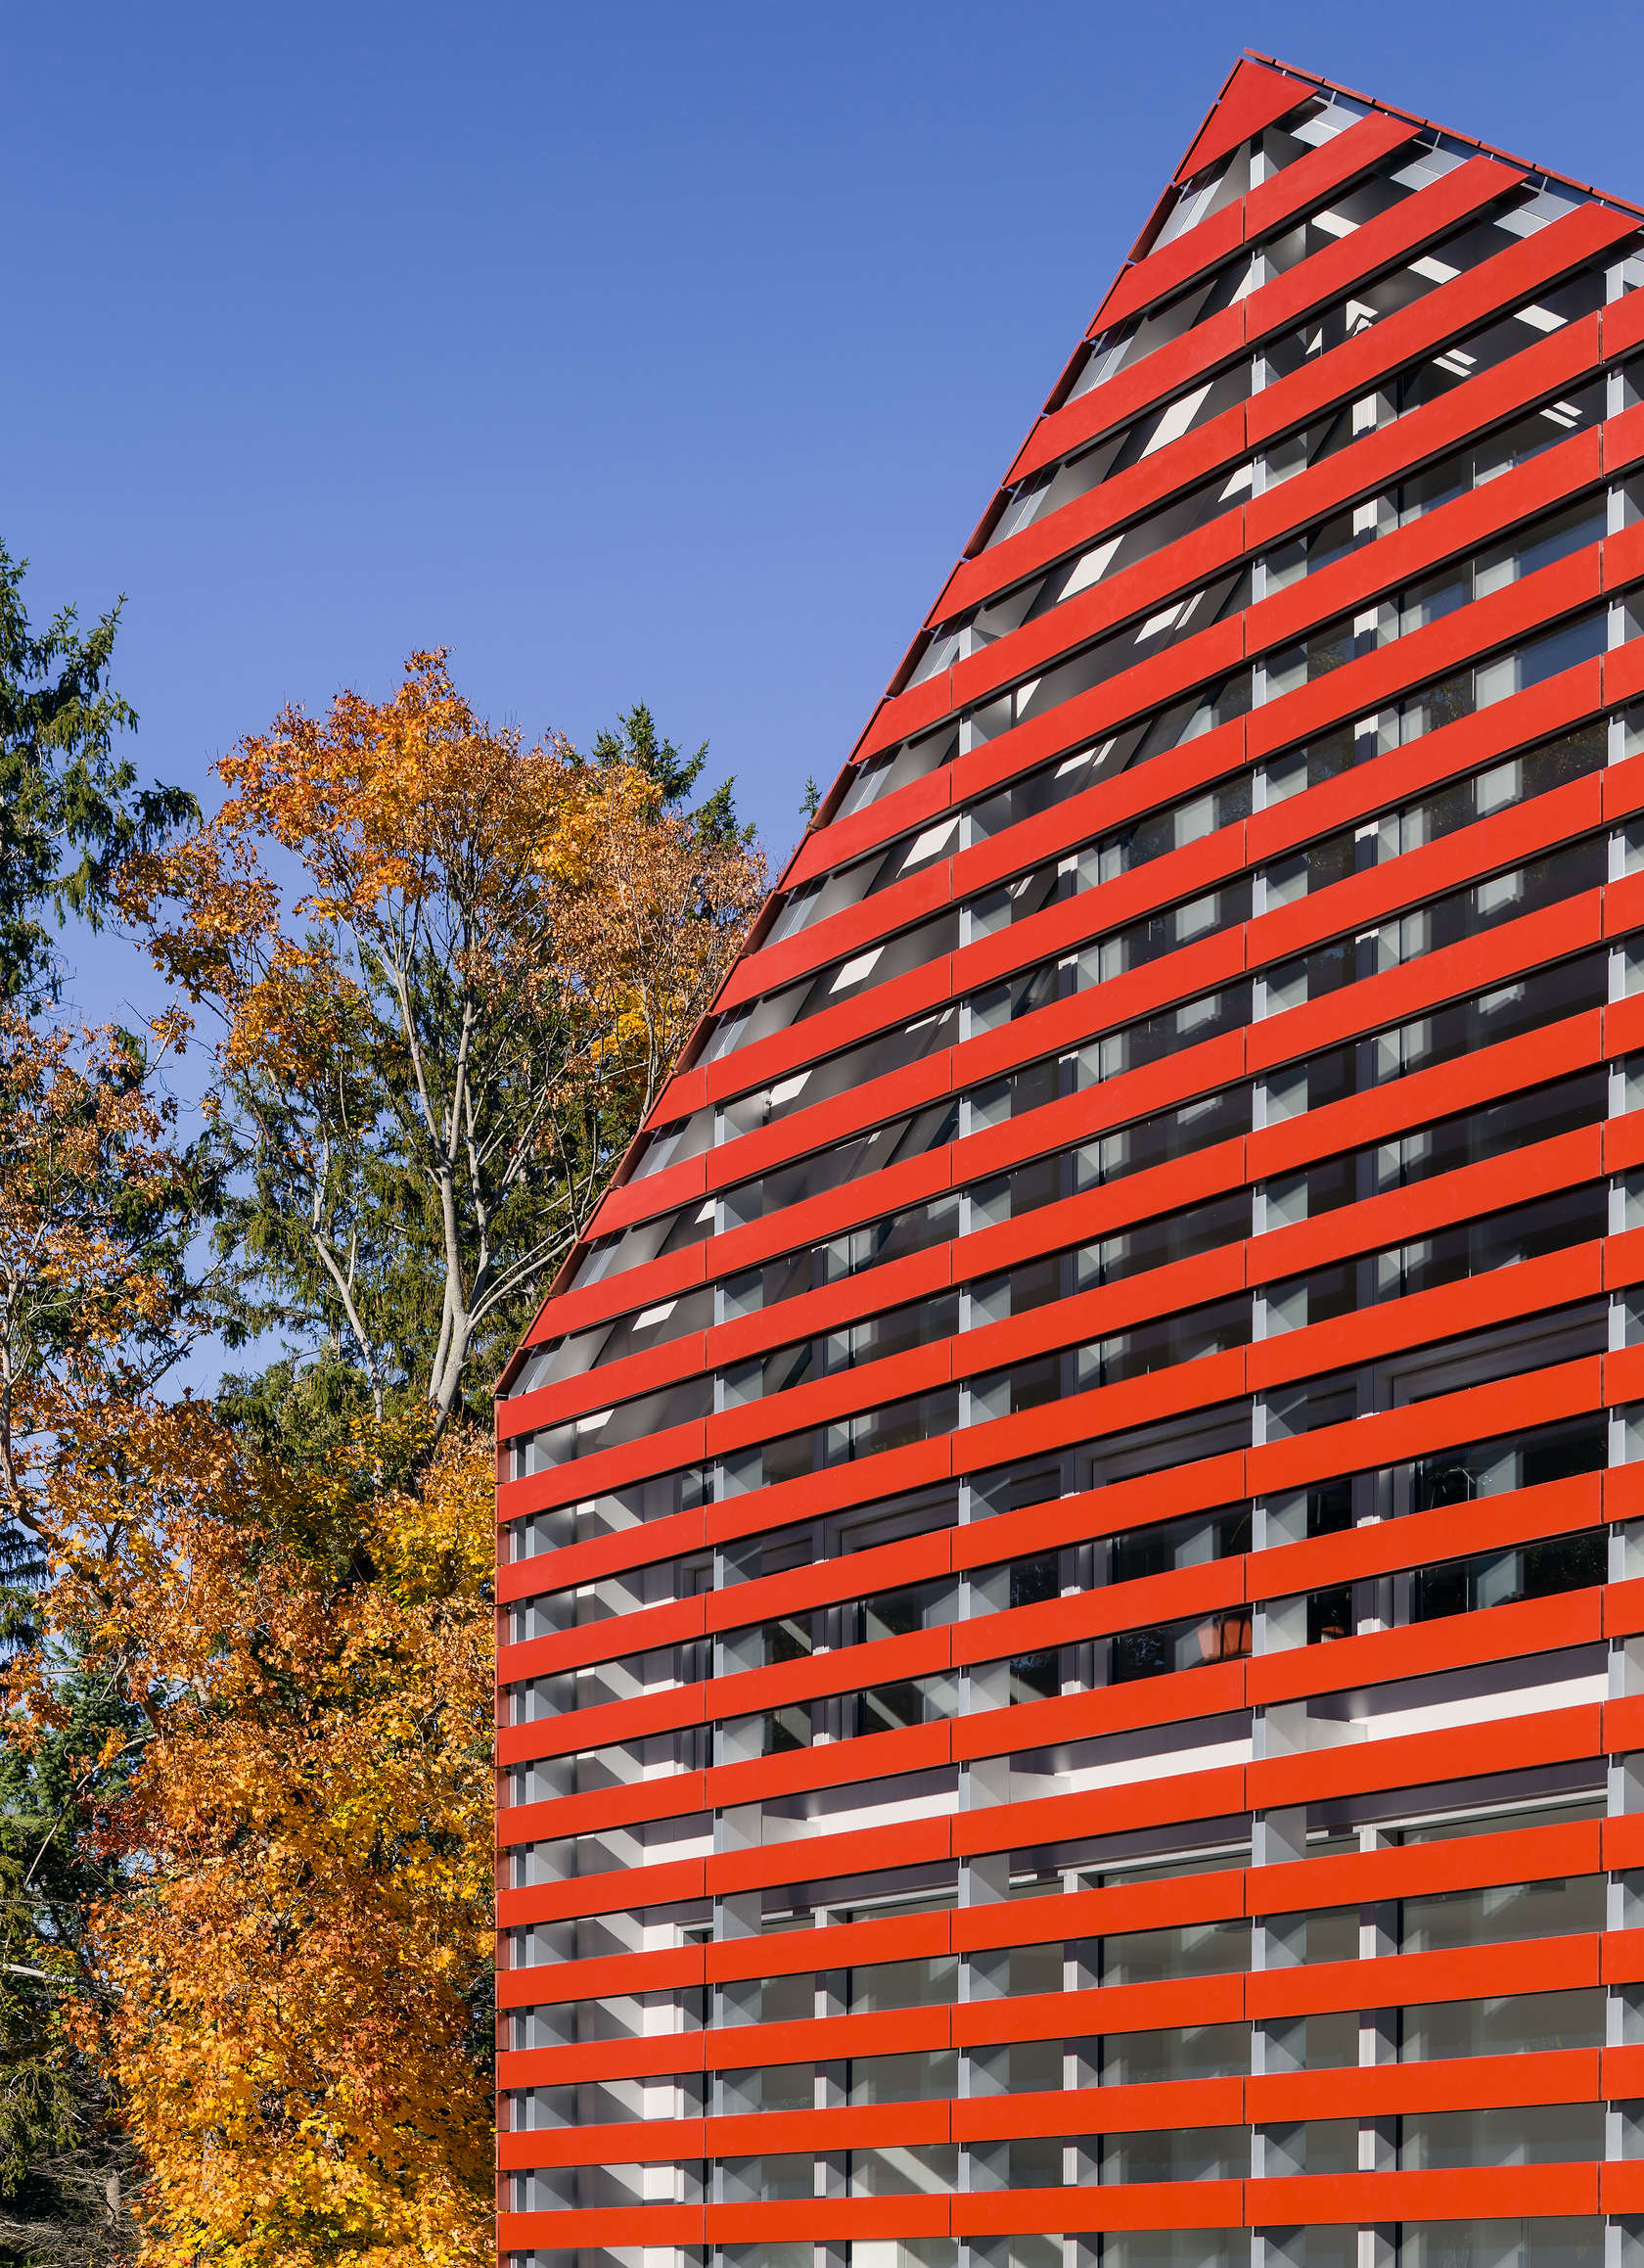 Facade detail of Red Barn designed by Roger Ferris + Partners